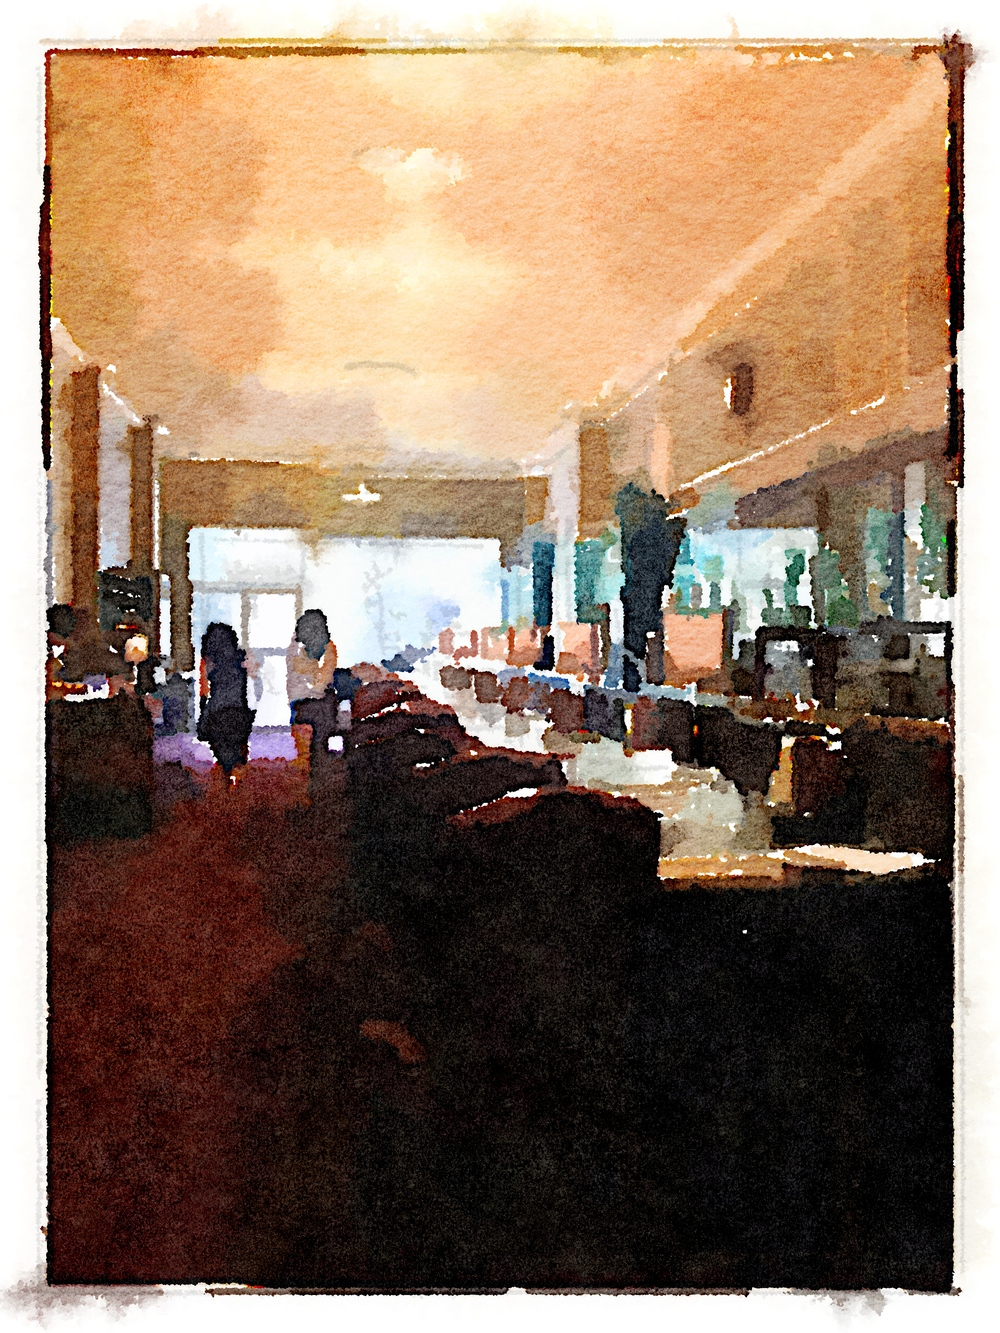 Bar Perspective 2 Art Print